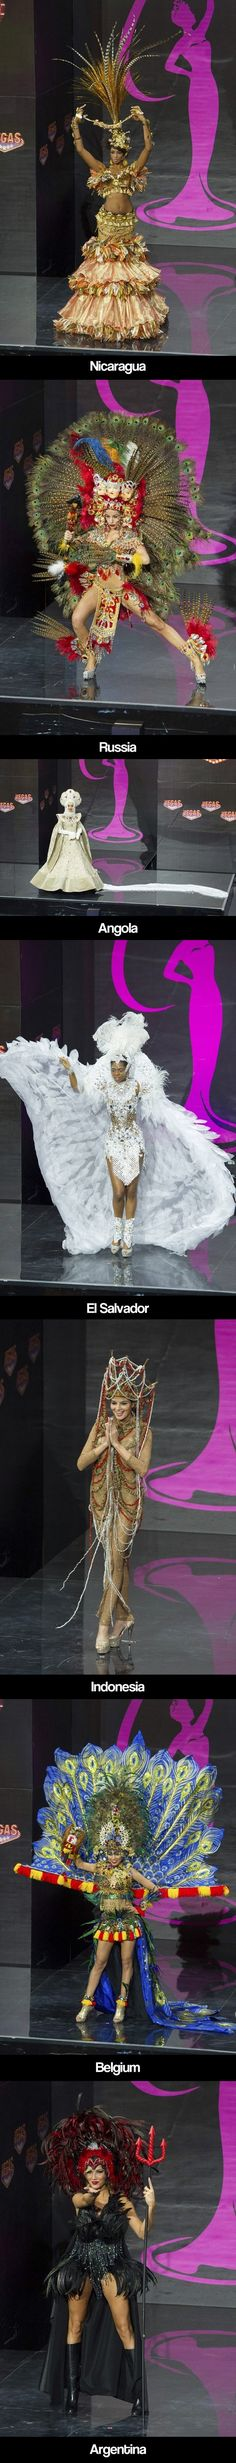 Miss Universe Parade of National Costumes